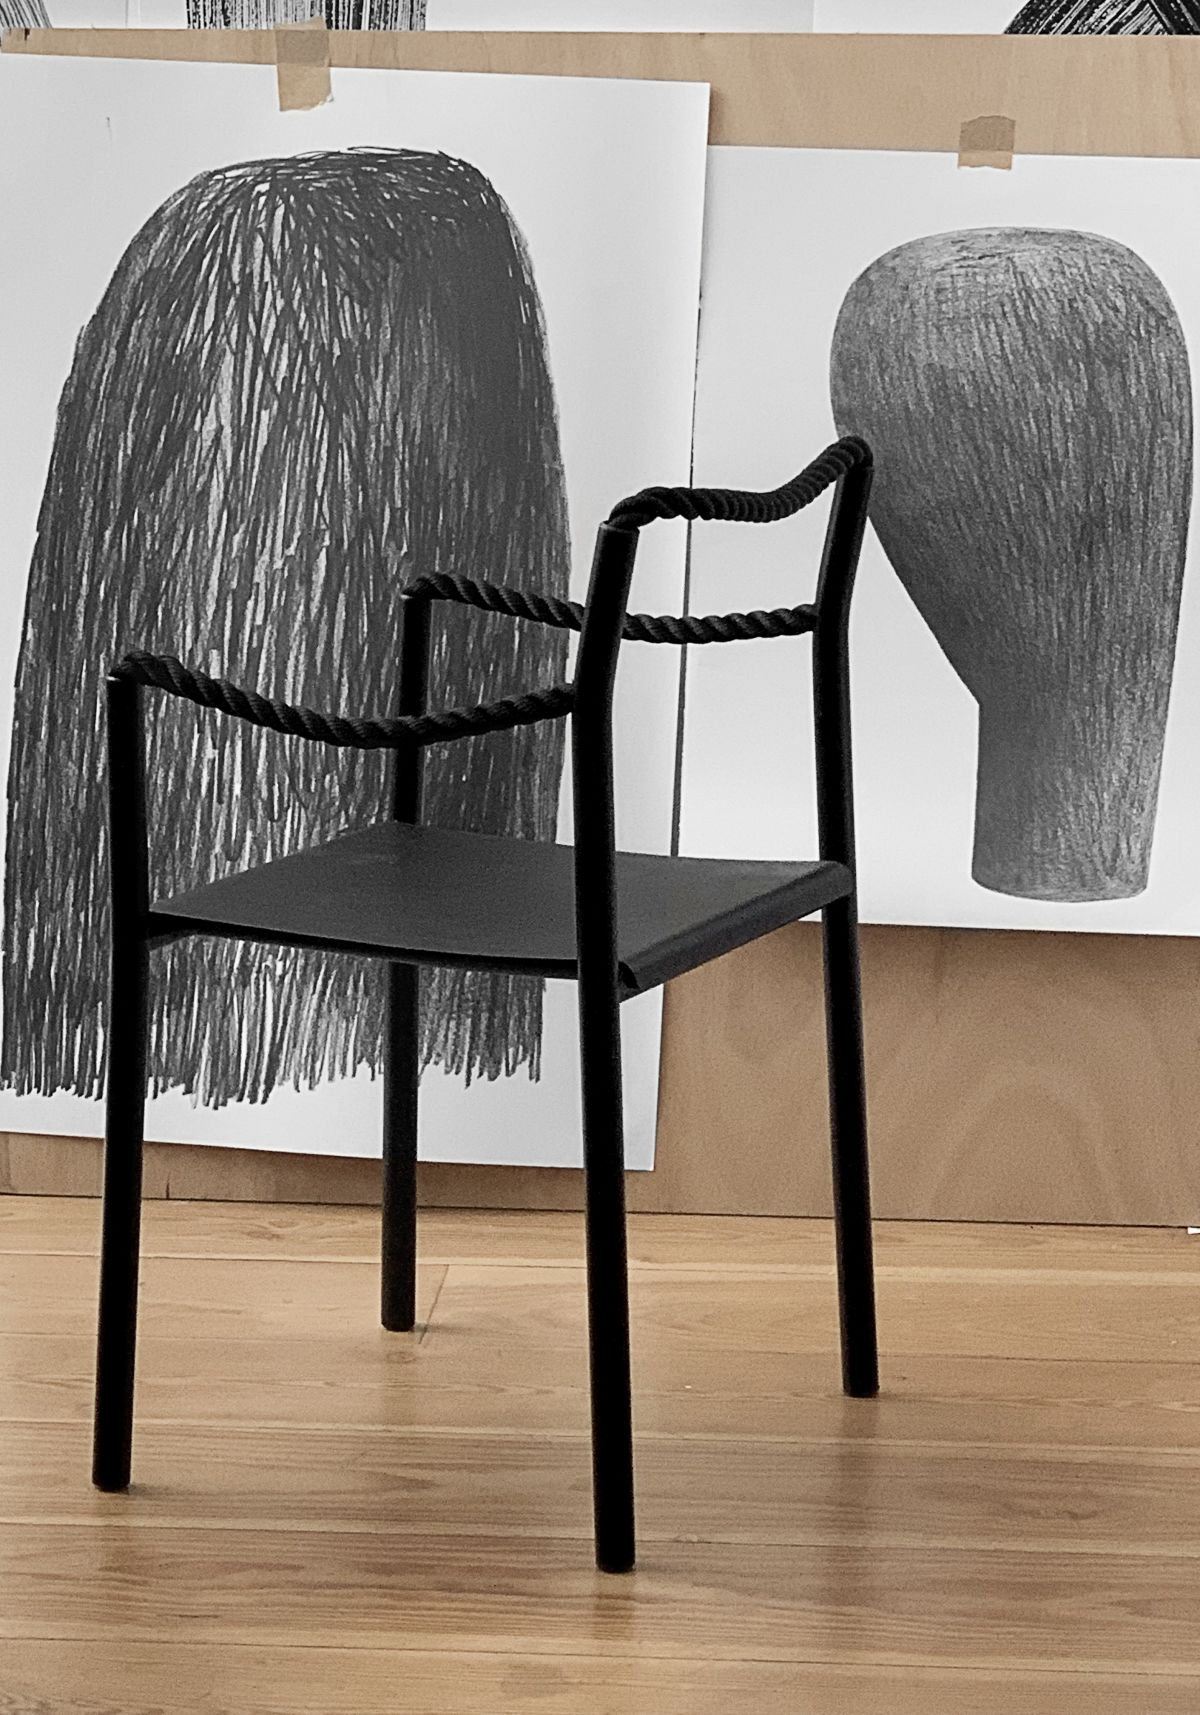 Rope chair Studio Bouroullec